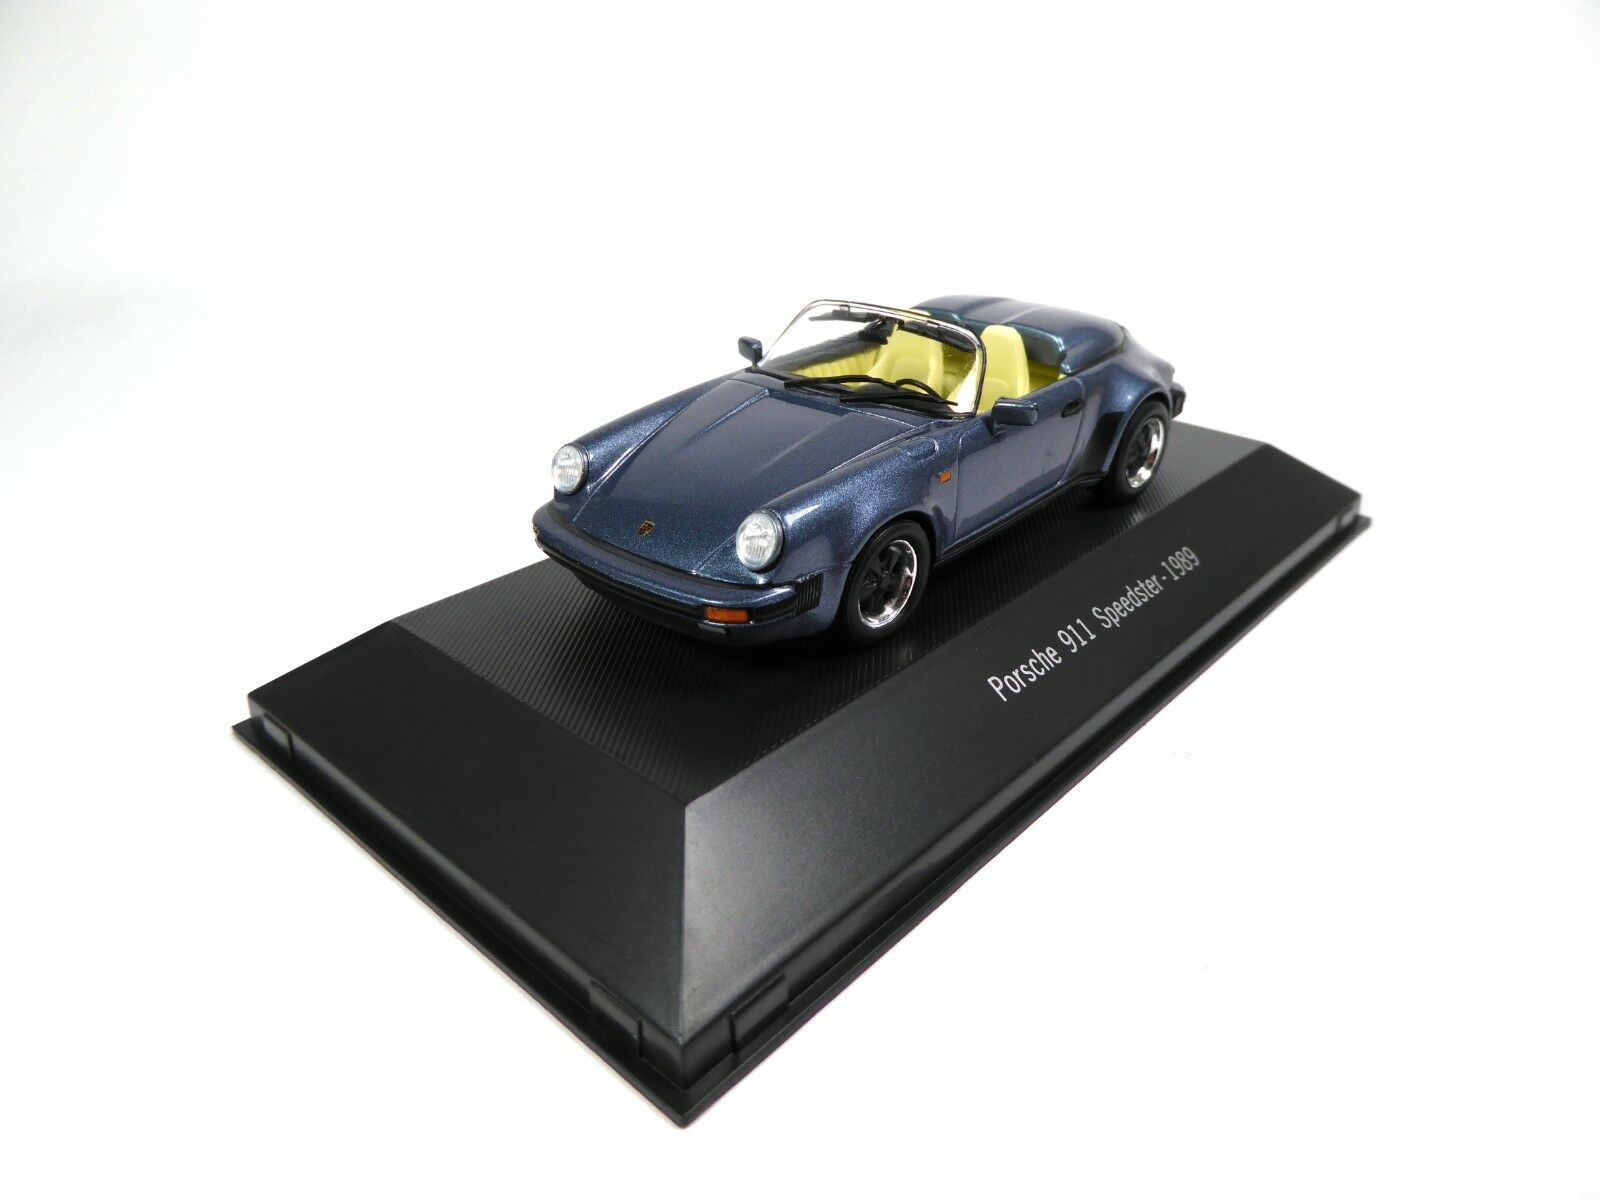 Porsche 911 Speedster 1989 - 1 43 43 43 Collection 911 - Voiture ATLAS Model Car 015 dfe68a